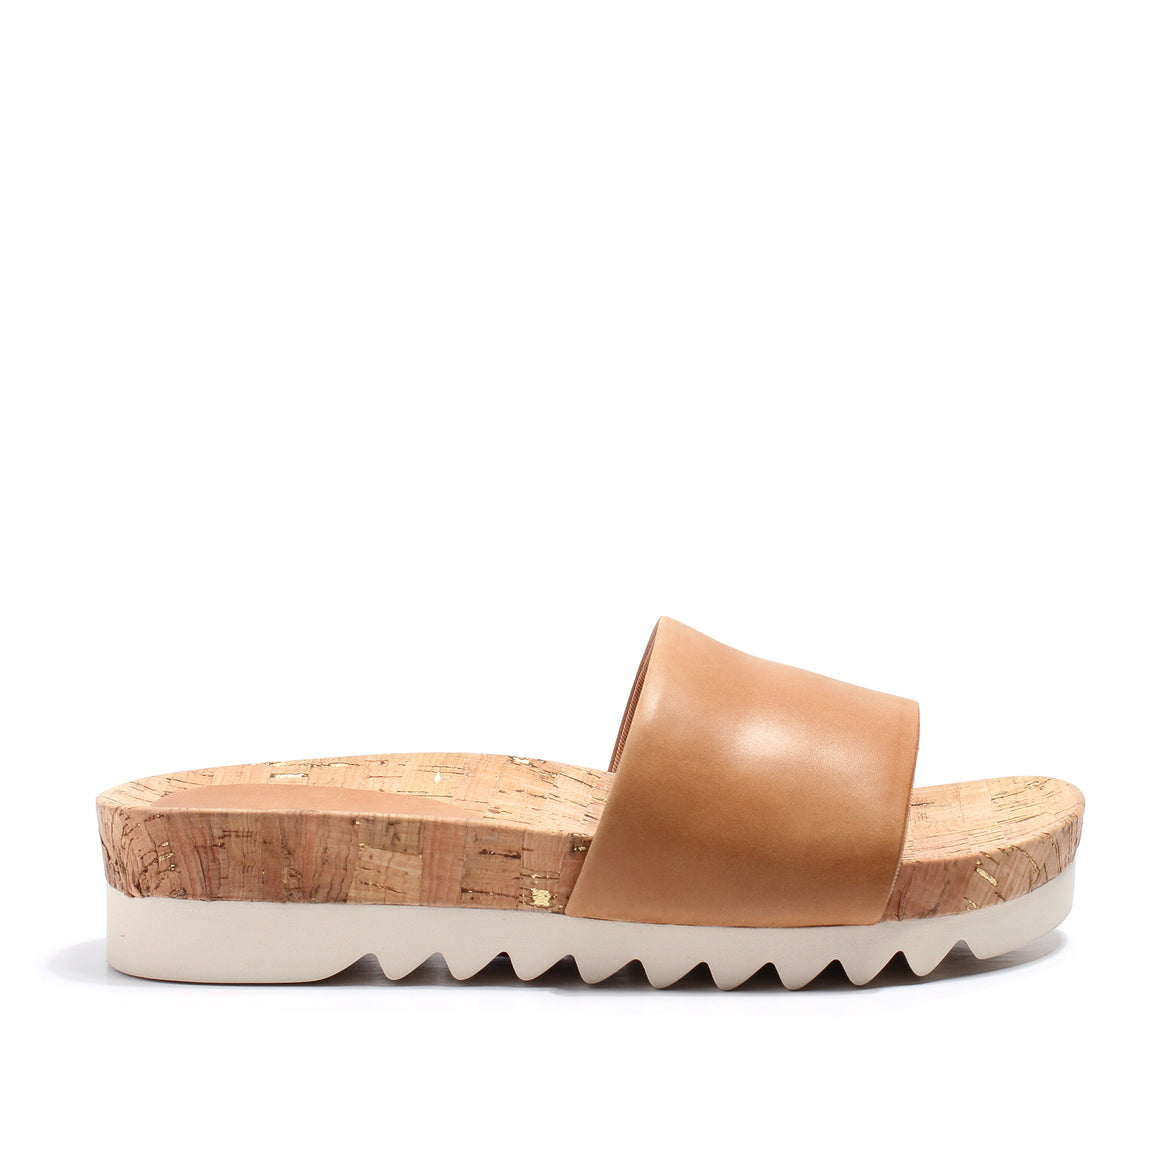 Rollie Sandal Slide Tooth Wedge - Tan with Cork